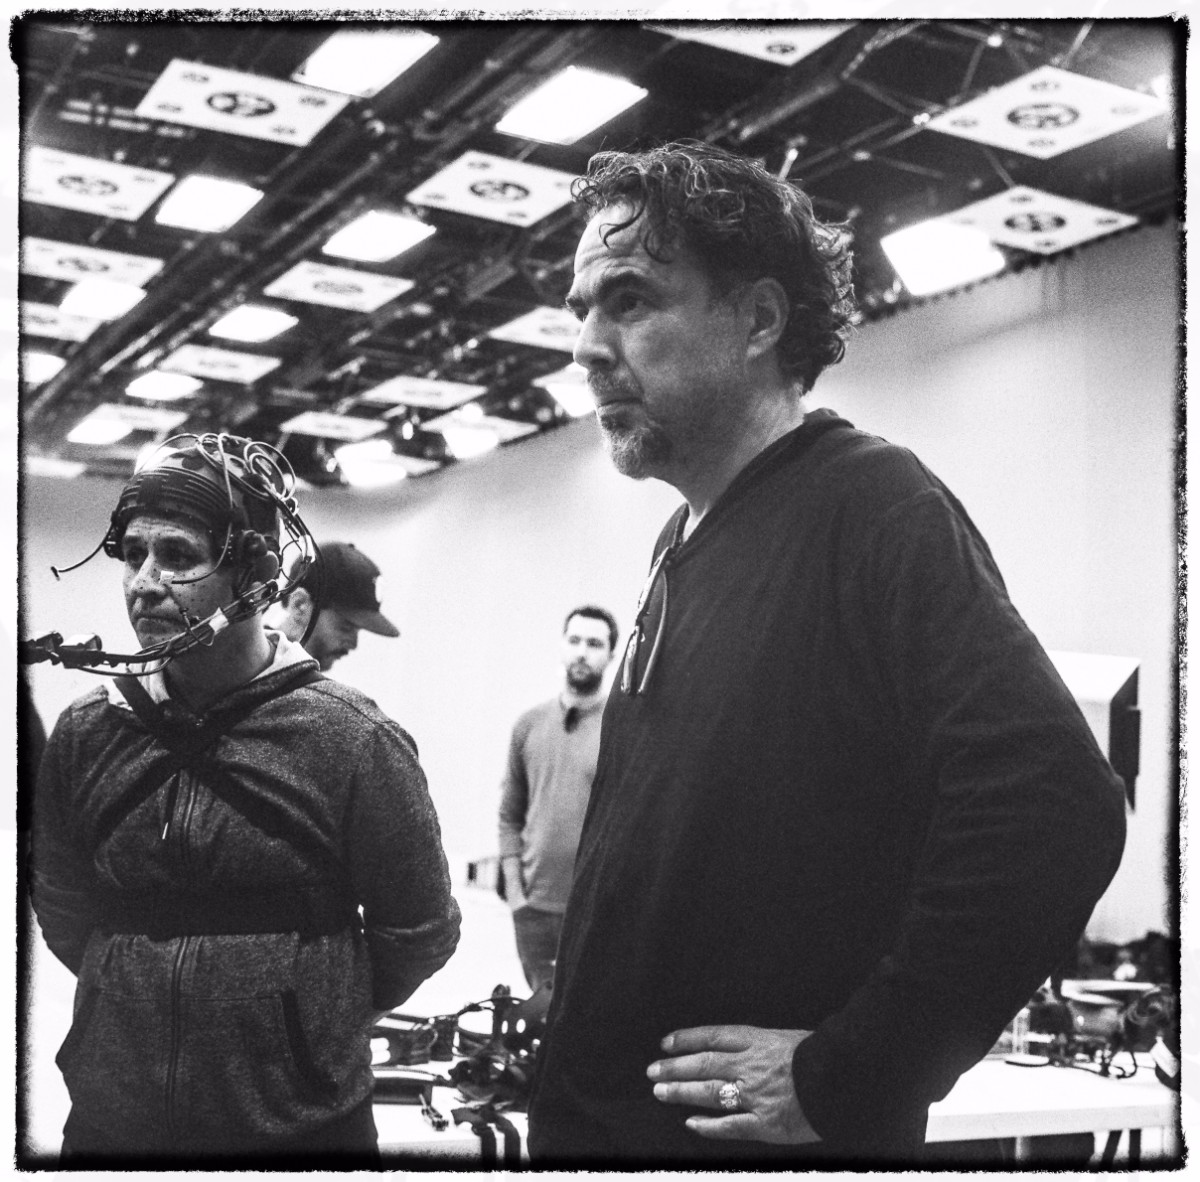 – Alejandro G. Iñárritu directing a baker from El Salvador named Yoni. Yoni is dressed in a motion-capture suit and recreating a harrowing moment on his journey. Photo credit: Chachi Ramirez.